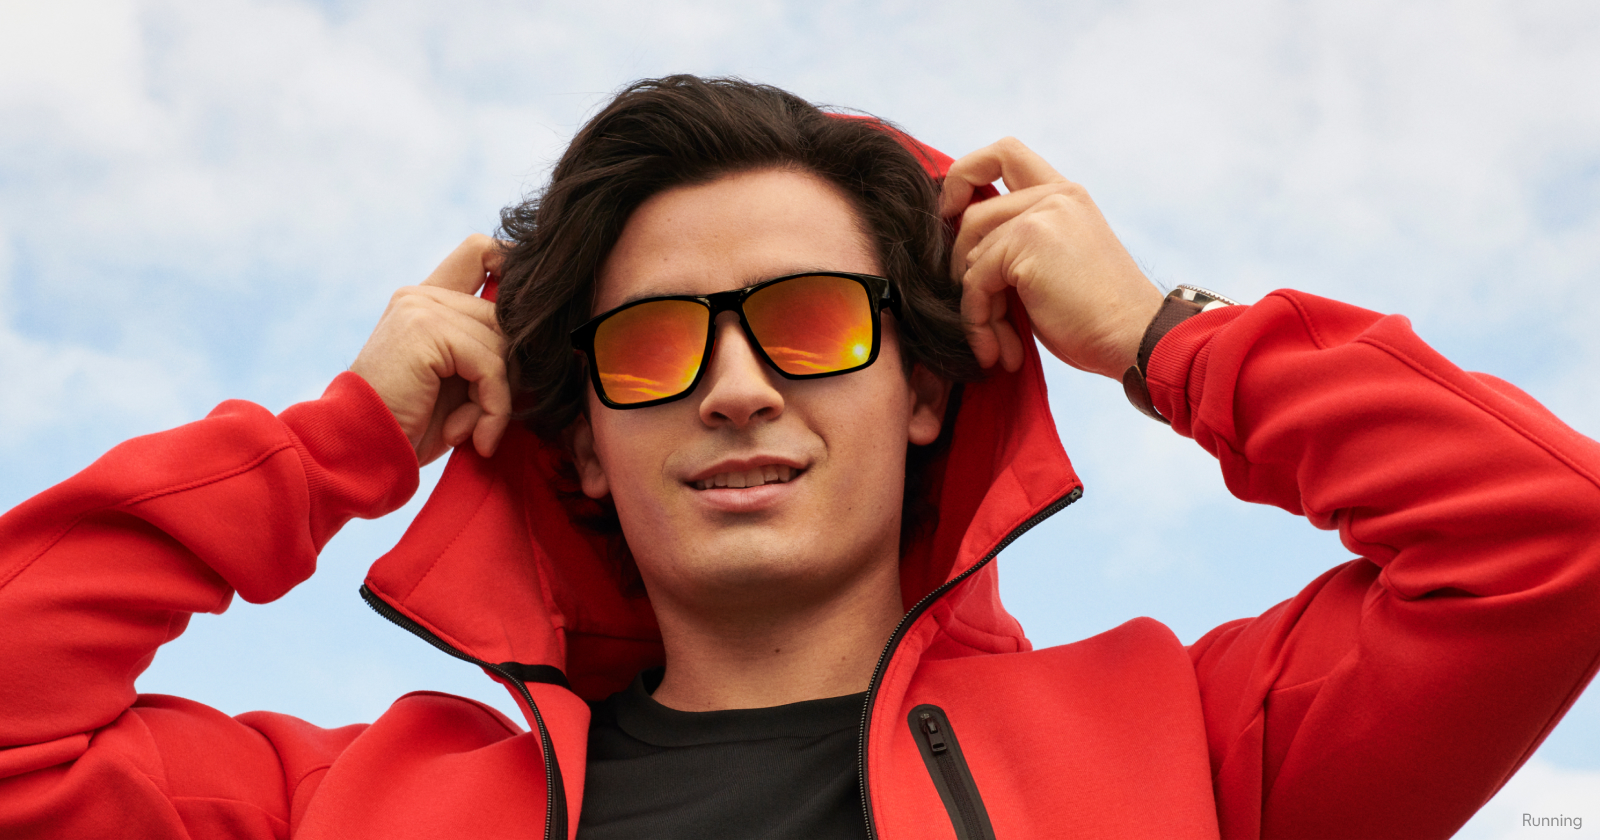 Can You Get Floating Sunglasses?